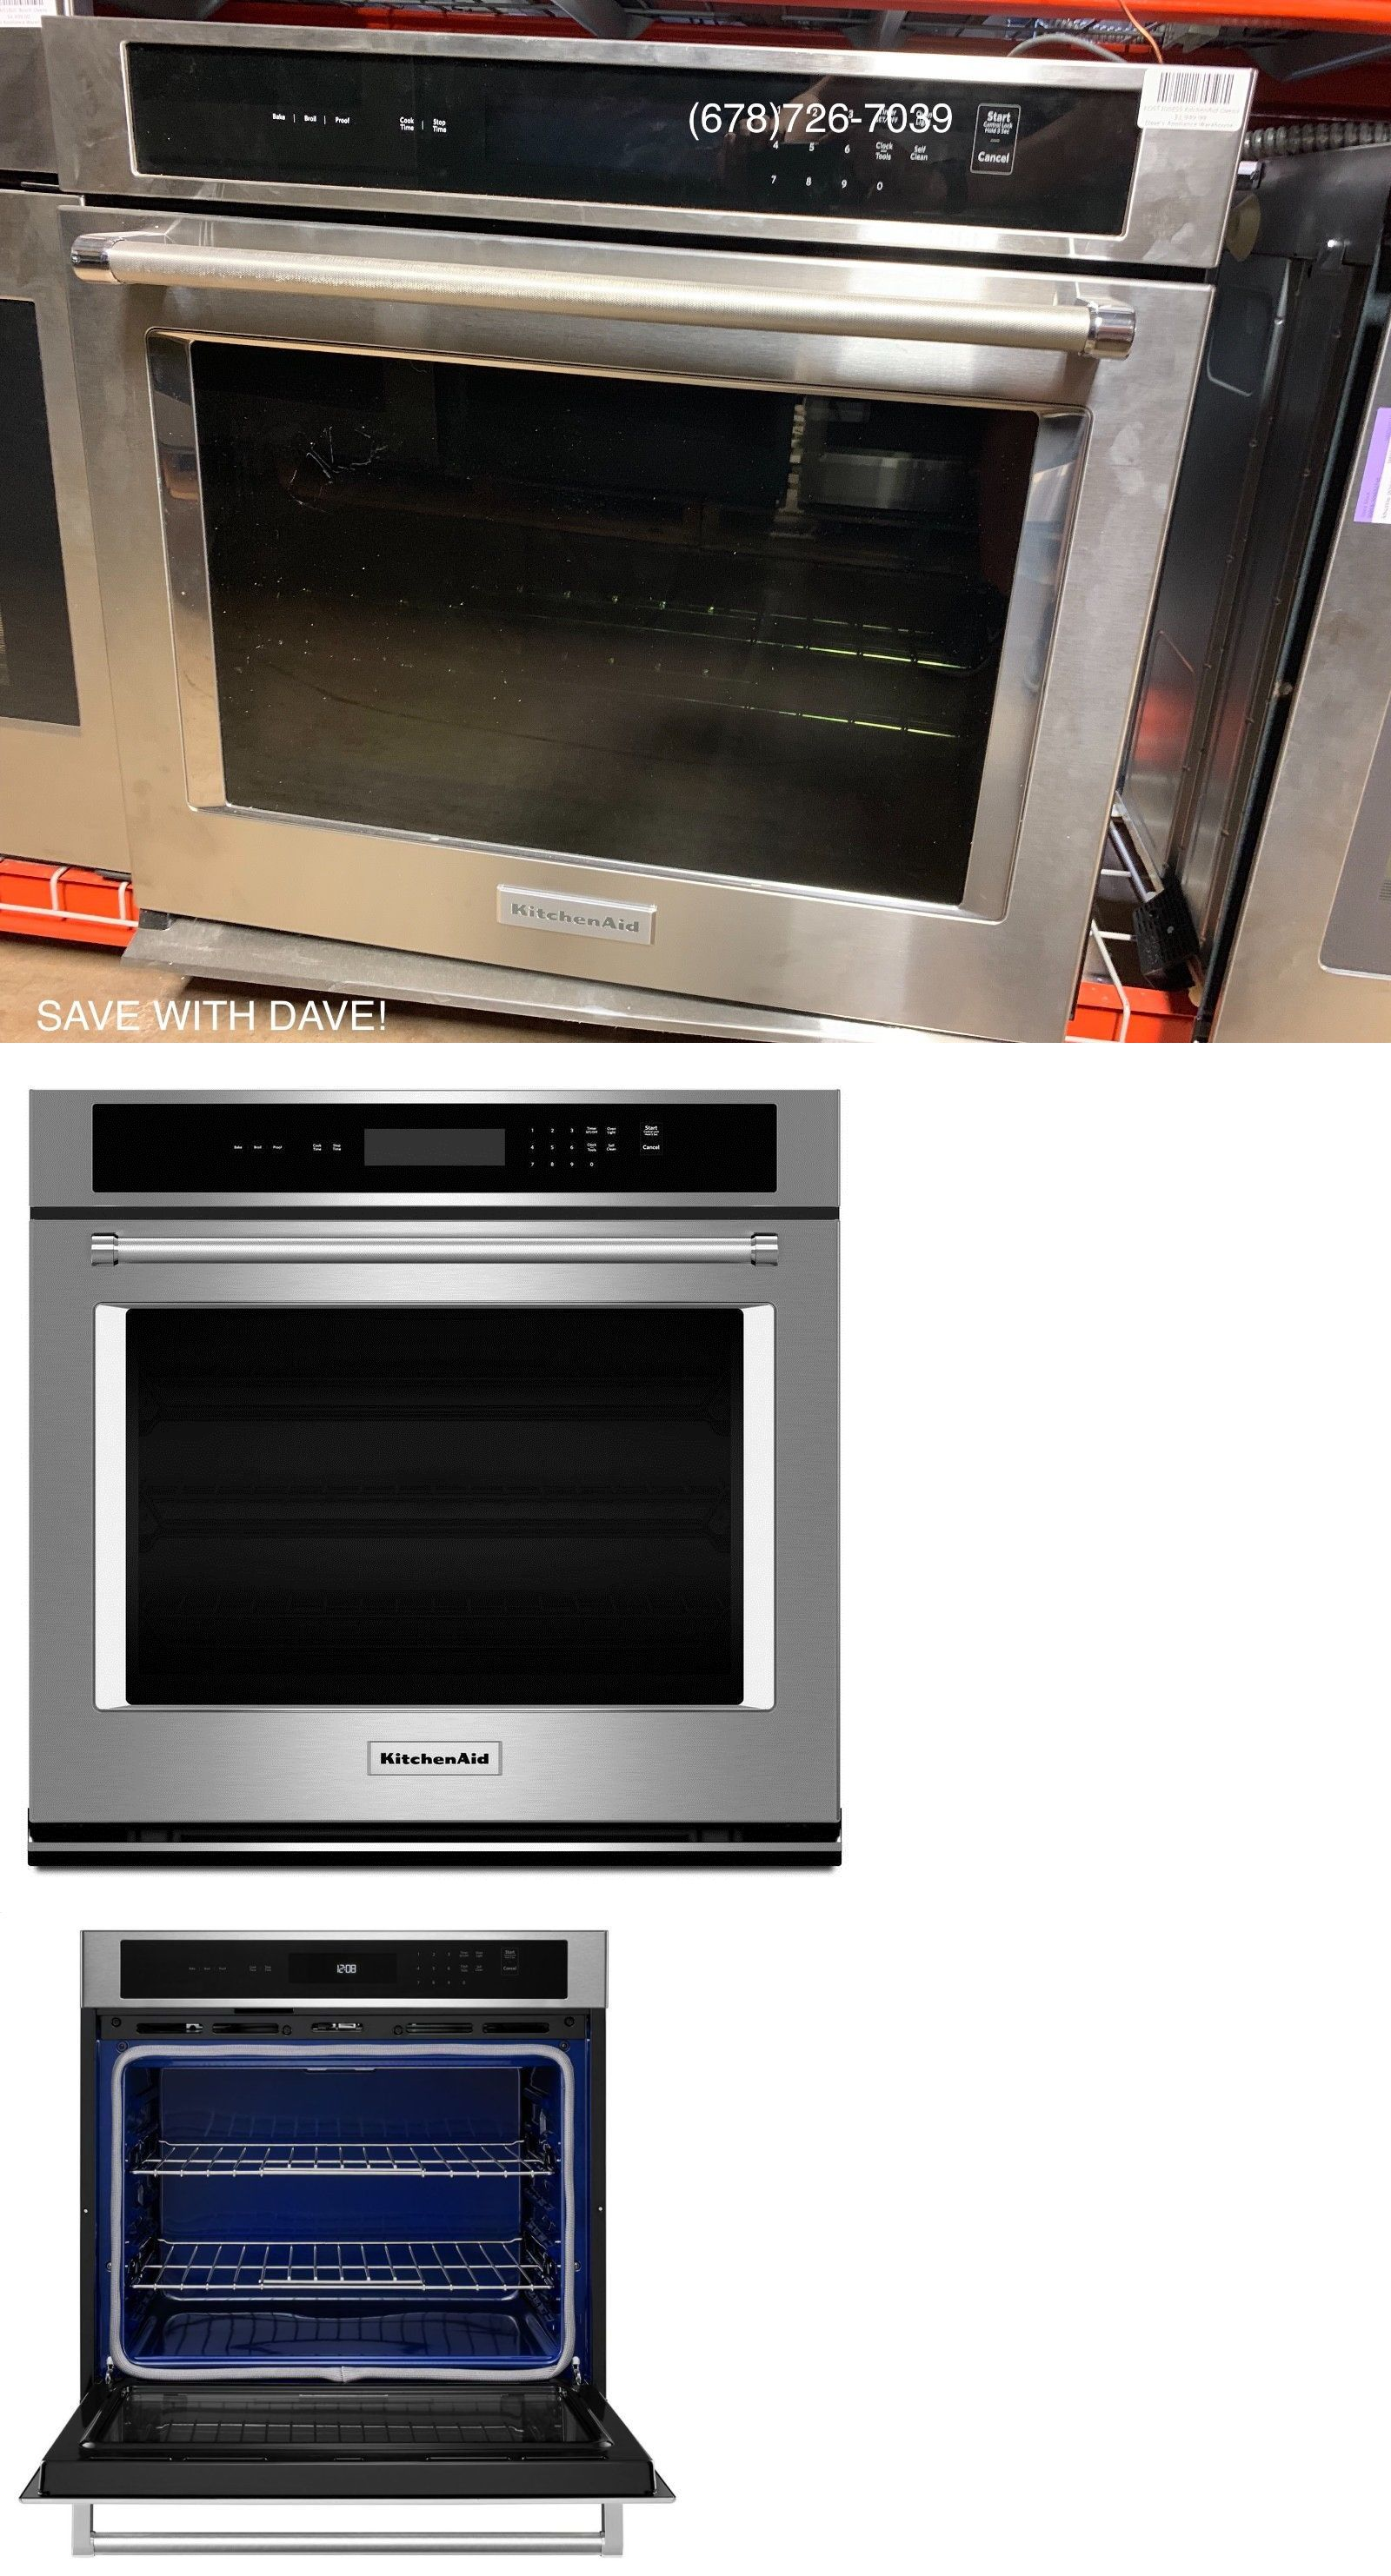 Wall Ovens 71318 Kitchenaid 30 Wall Oven Kost100ess Buy It Now